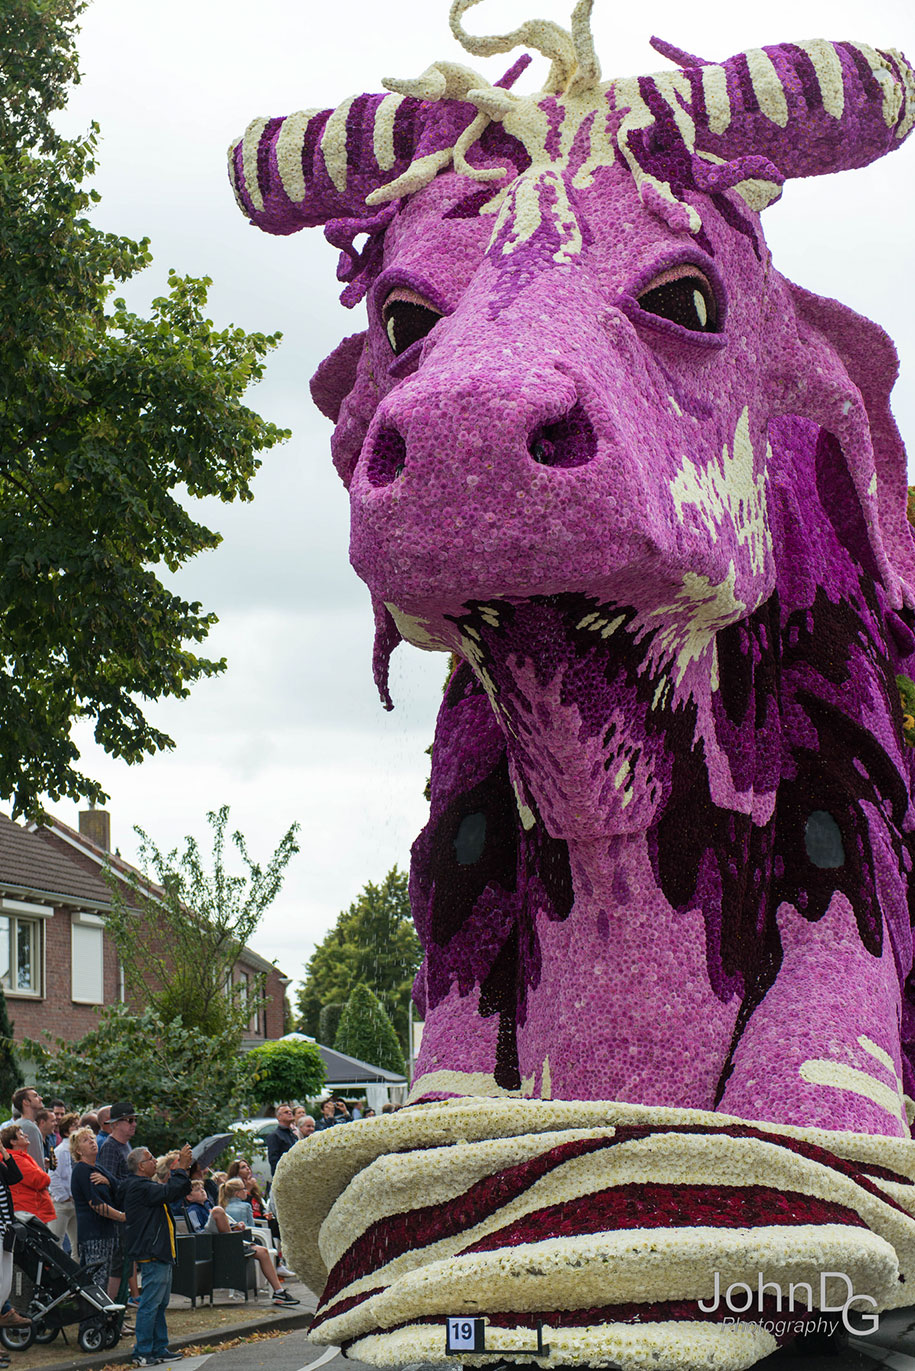 giant-flower-sculpture-parade-corso-zundert-2016-netherlands-11